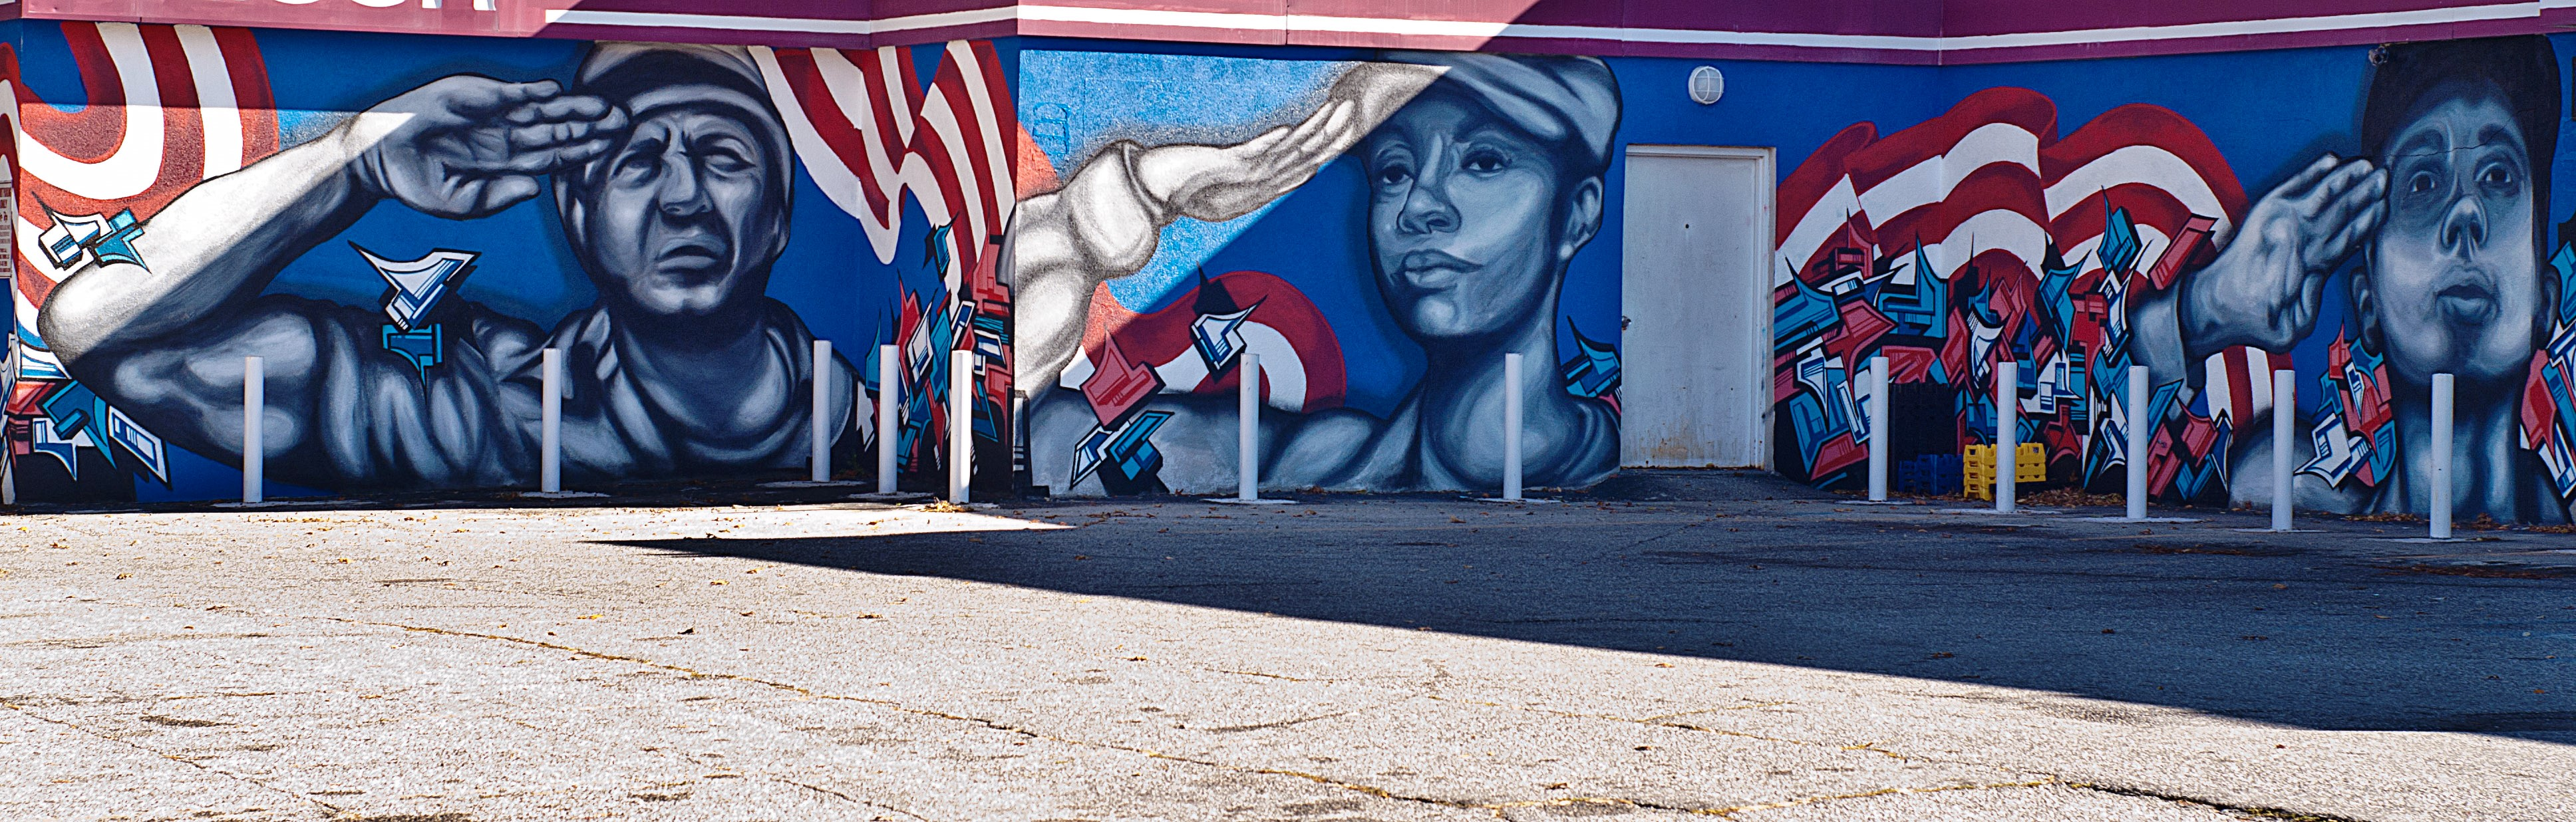 Support Our Troops Muralsdc